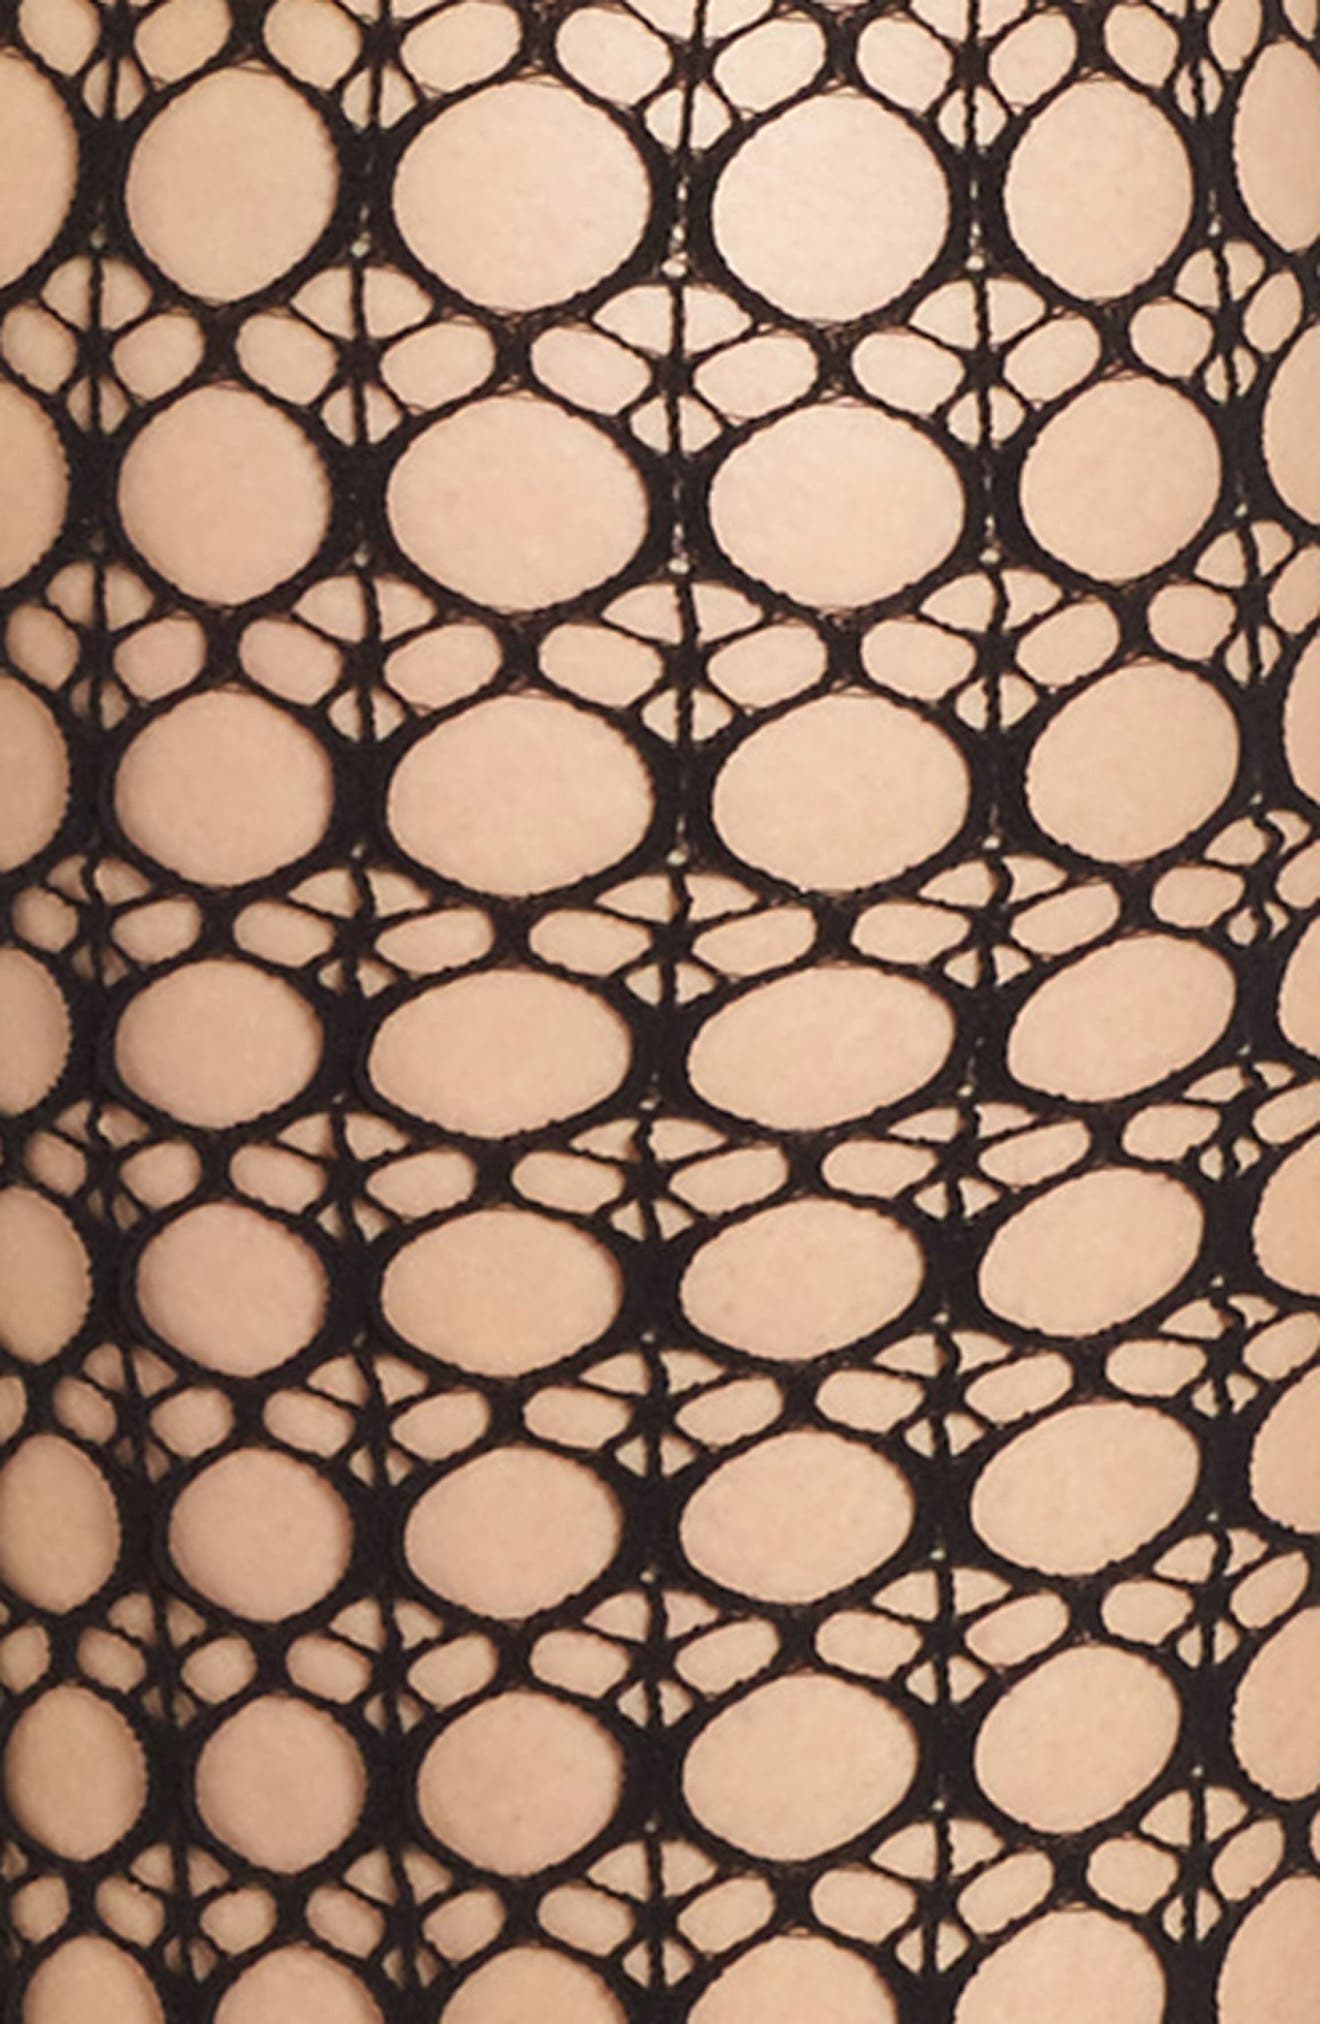 Circle Net Tights,                             Alternate thumbnail 2, color,                             007